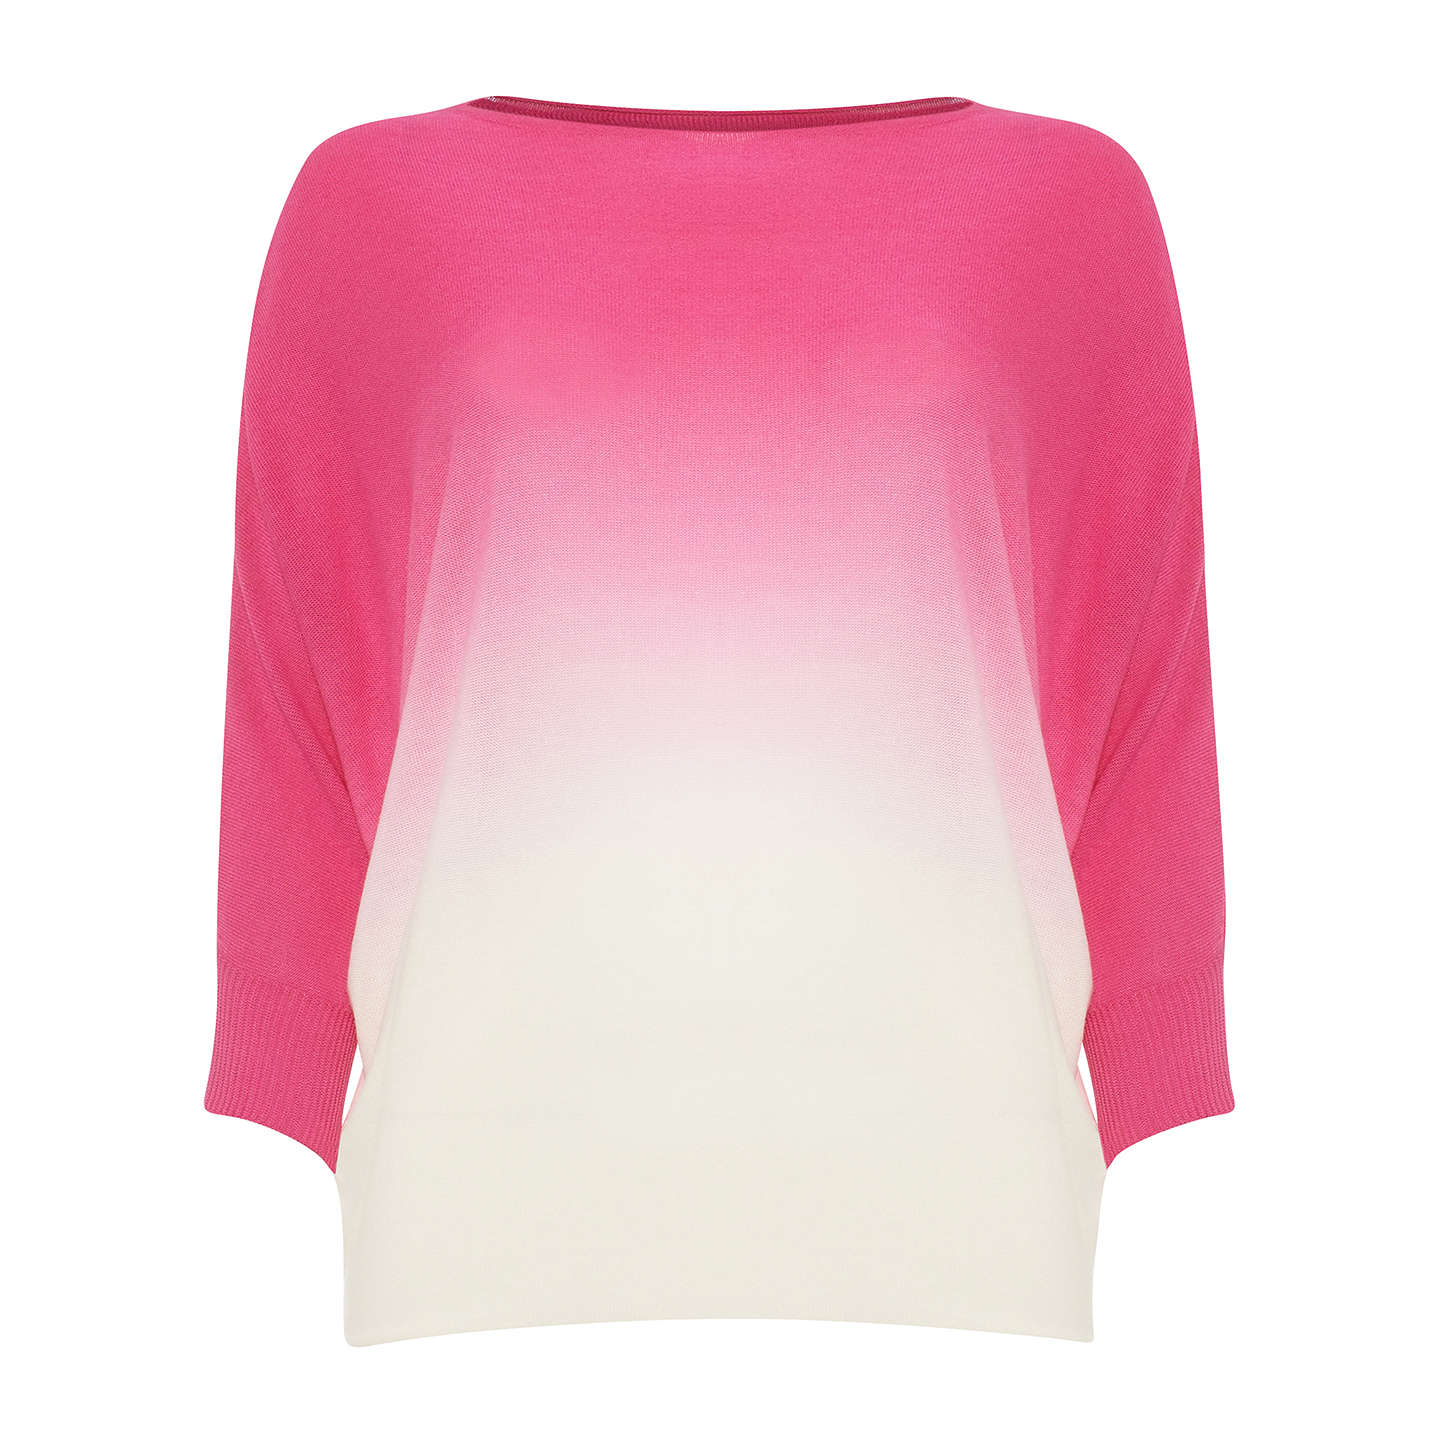 BuyPhase Eight Becca Dip Dye Jumper, Hot pink, XS Online at johnlewis.com